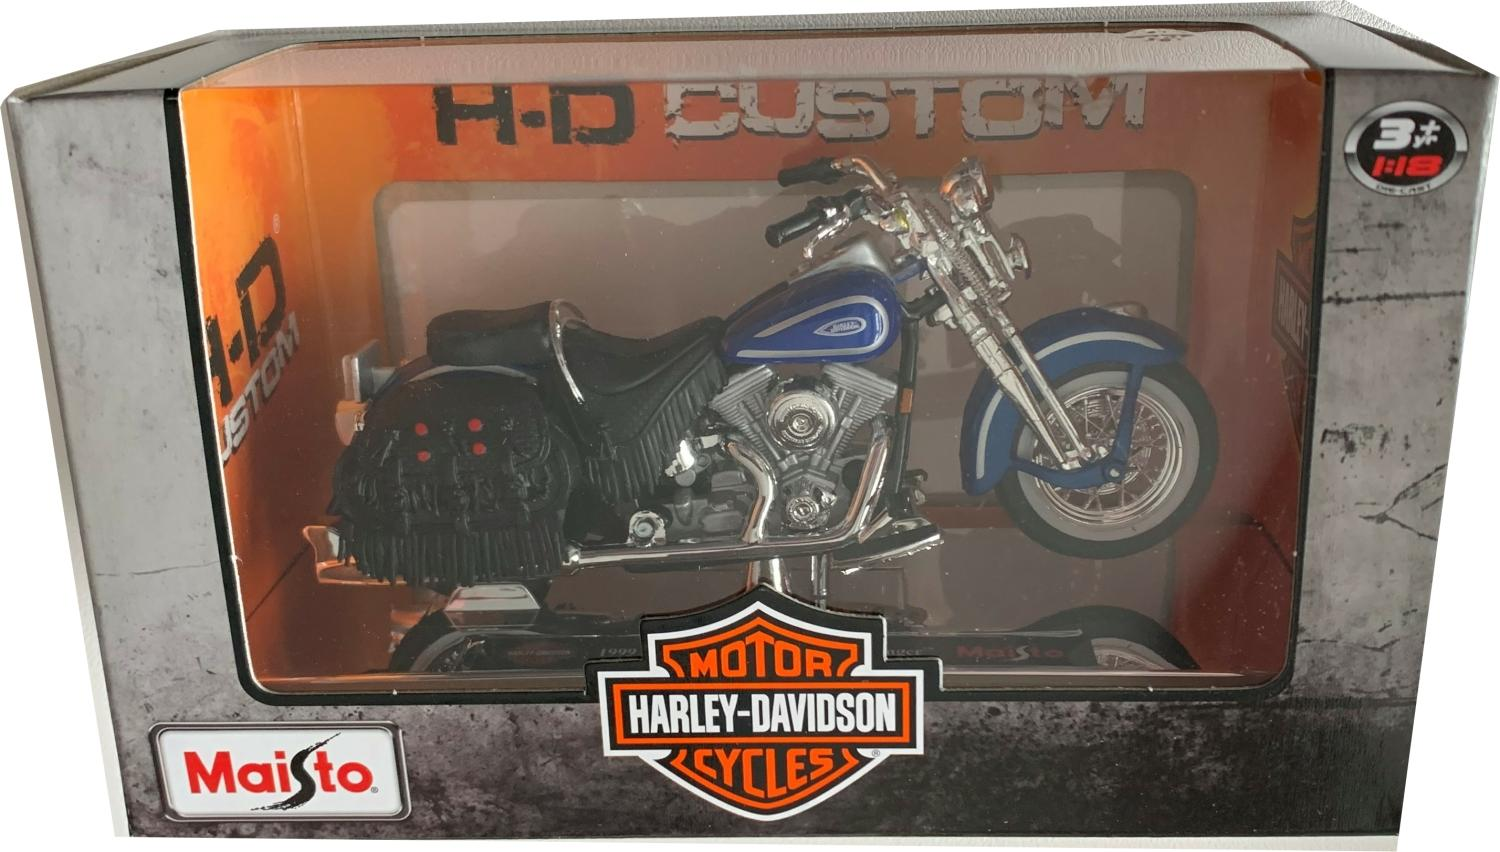 Harley Davidson 1999 ,FLSTS, Heritage Softail Springer in blue, 1:18 scale model from Maisto